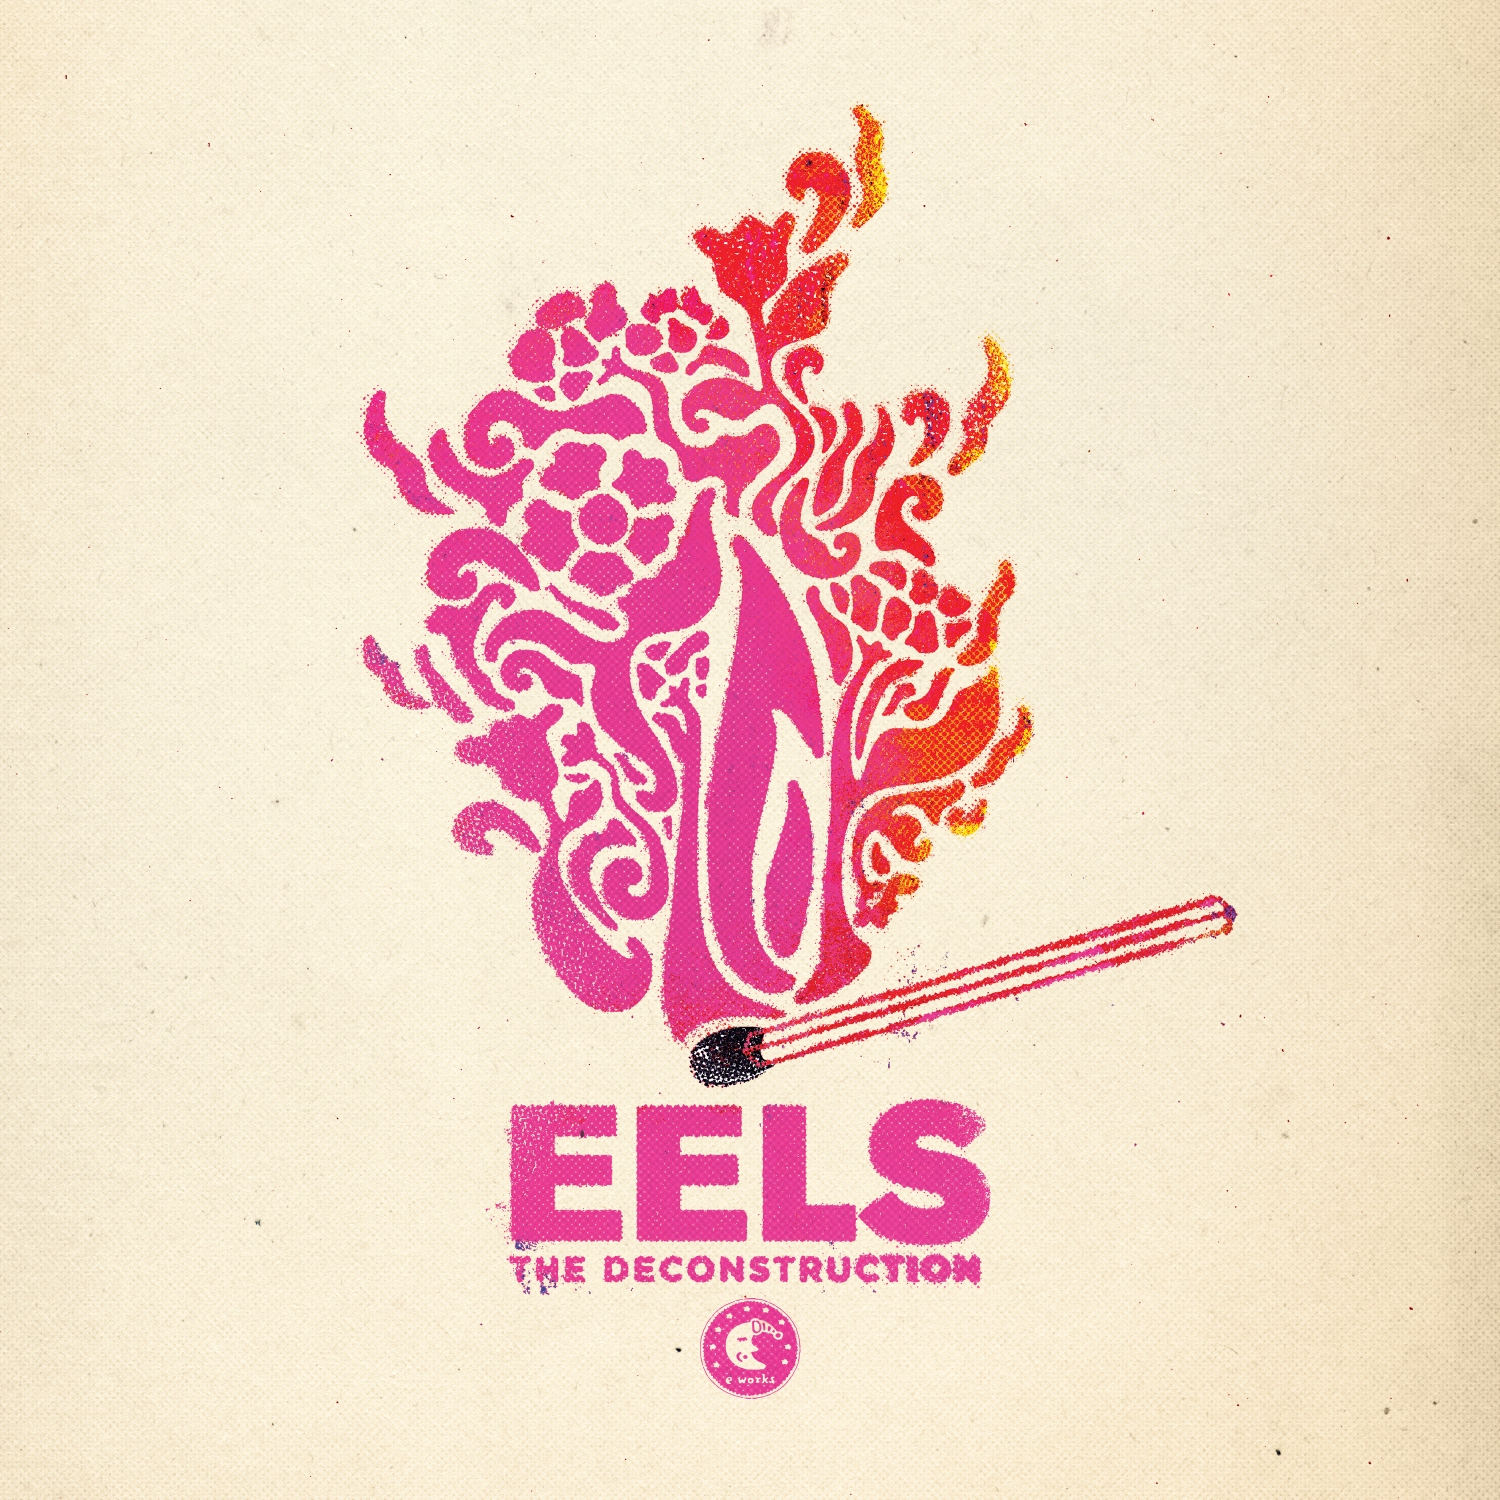 Eels: The Deconstruction (2018) Book Cover